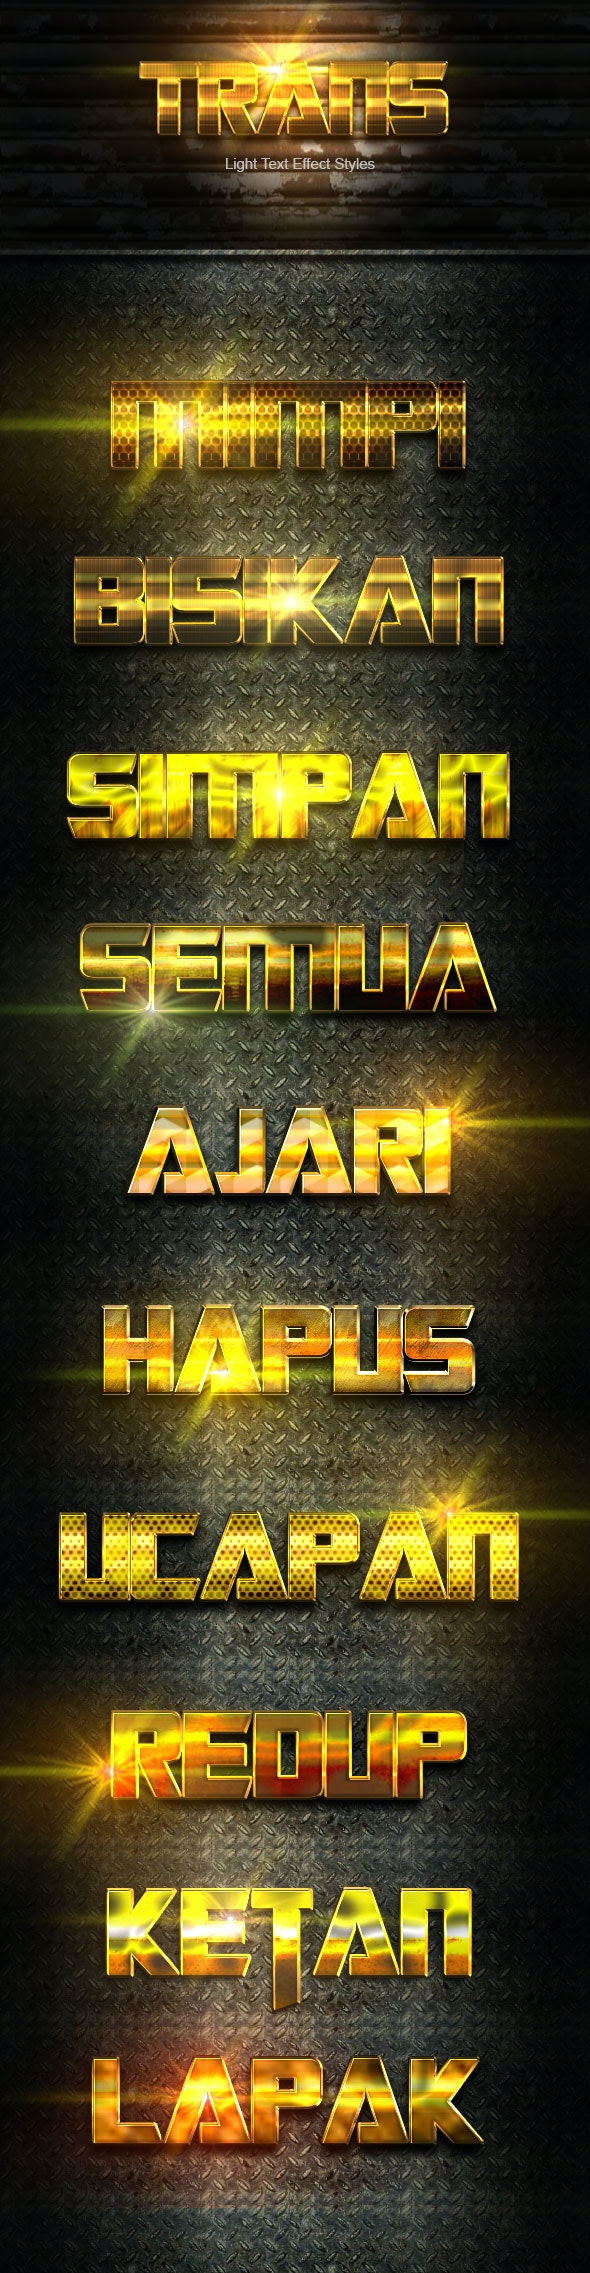 Trans Gold Text Effect V05 - Text Effects Actions